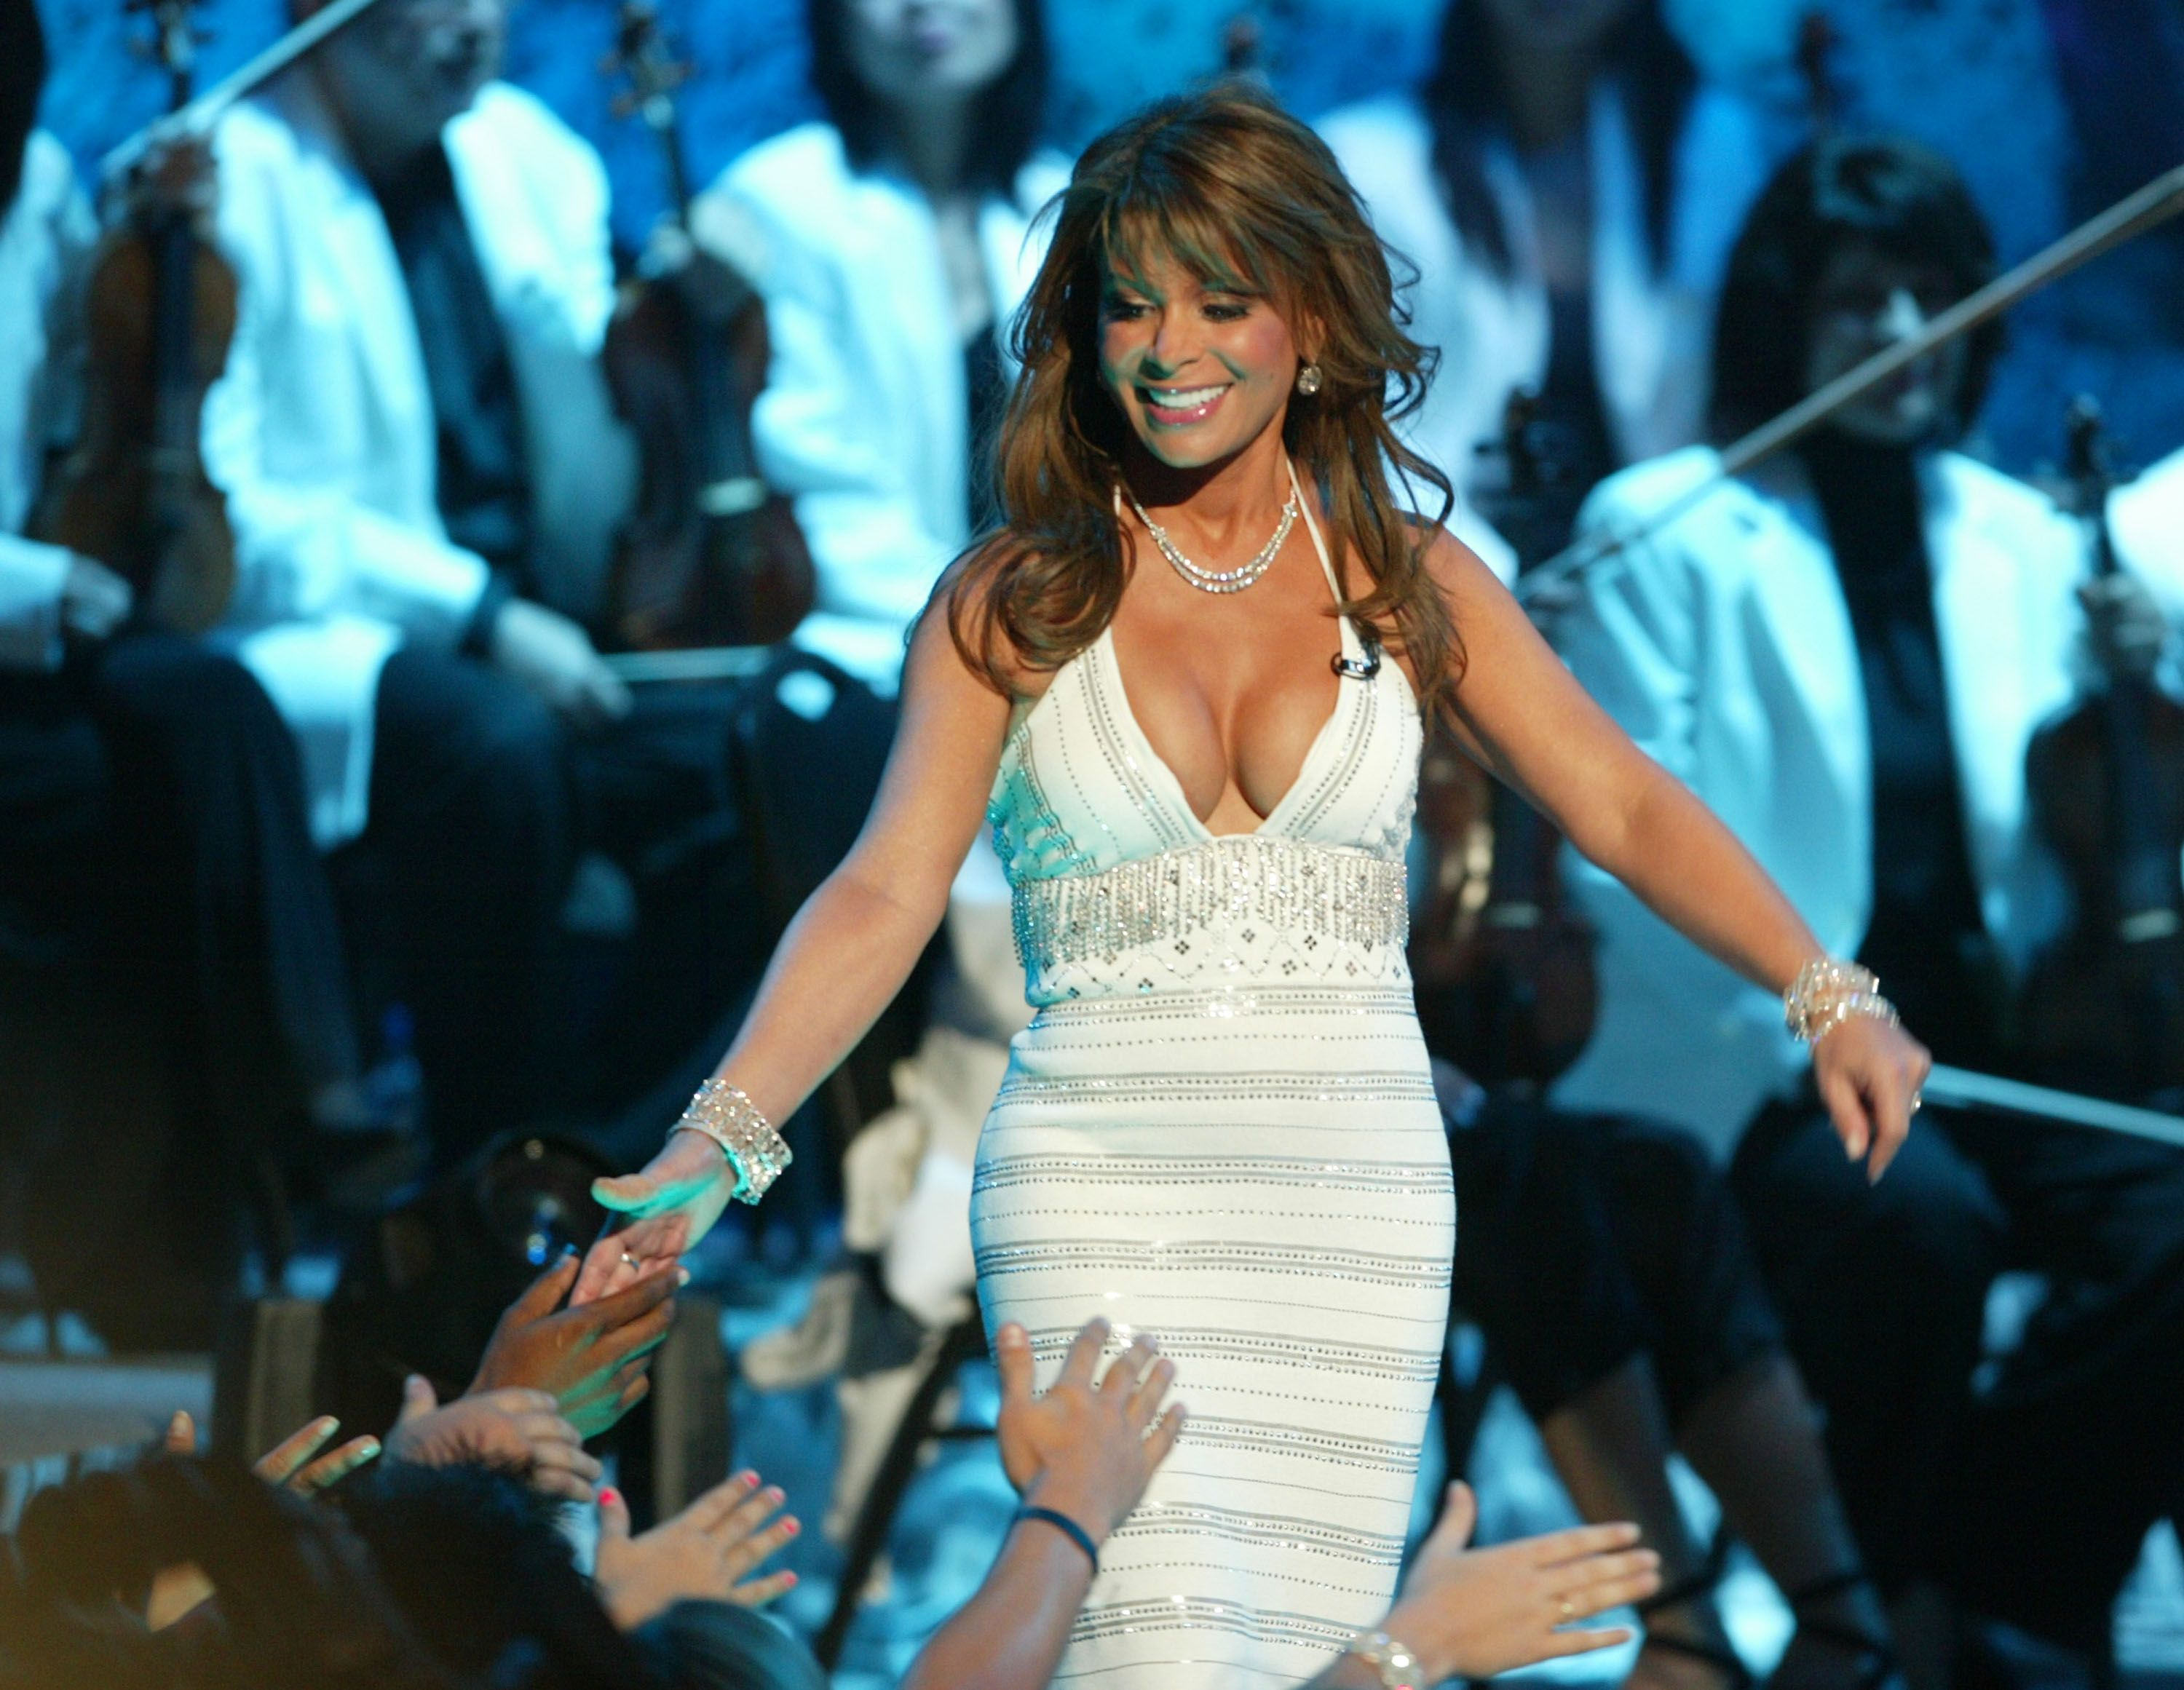 Judge Paula Abdul at the American Idol Season Three Grand Finale in 2004 in Hollywood   Source: Getty Images